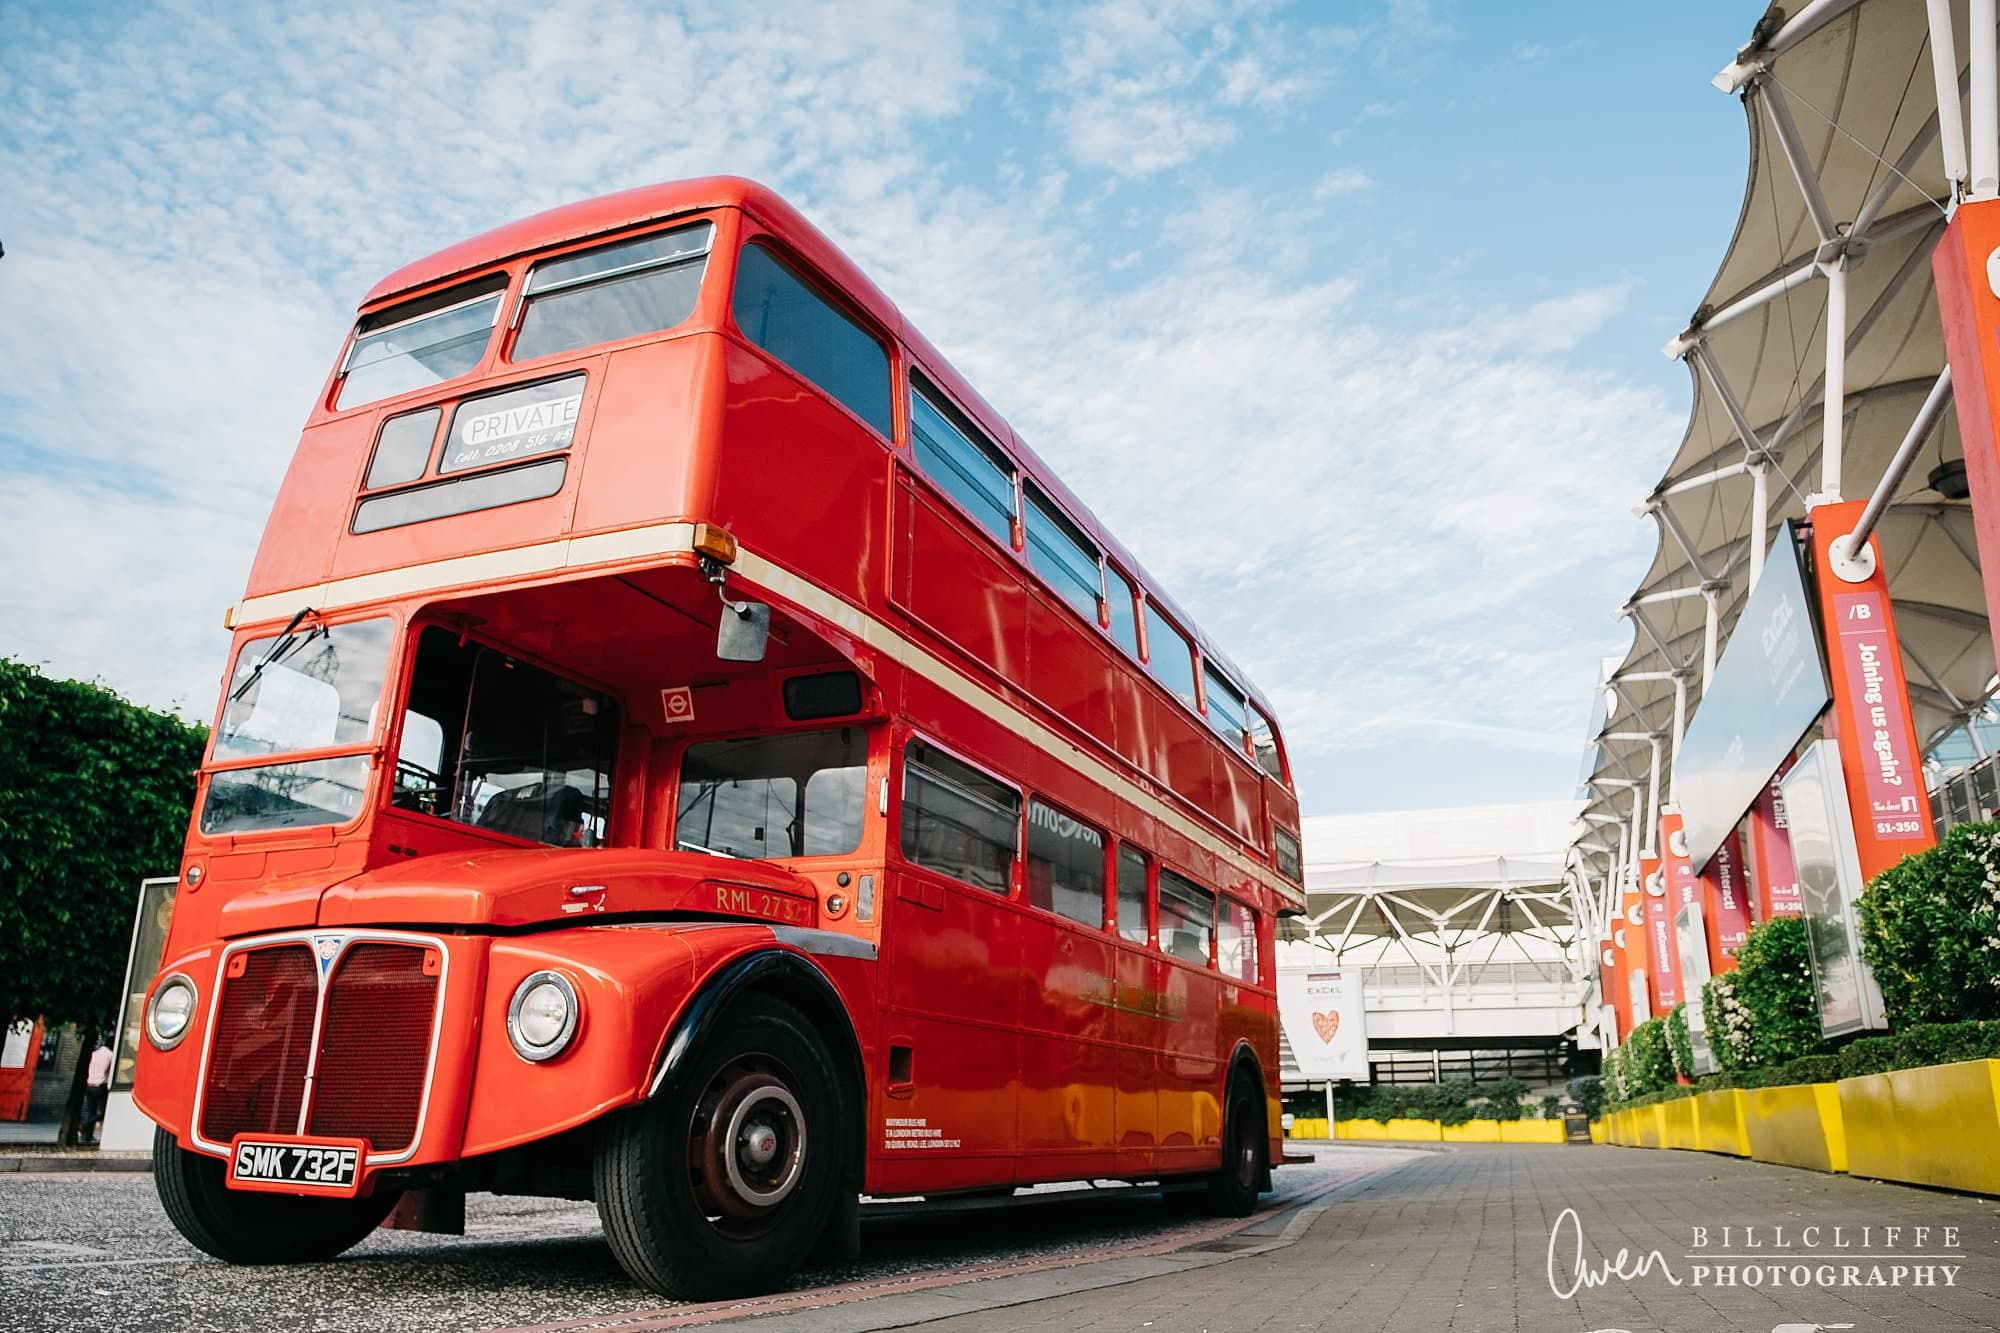 london engagement proposal photographer routemaster gr 001 - A Romantic Marriage Proposal on a London Routemaster Bus